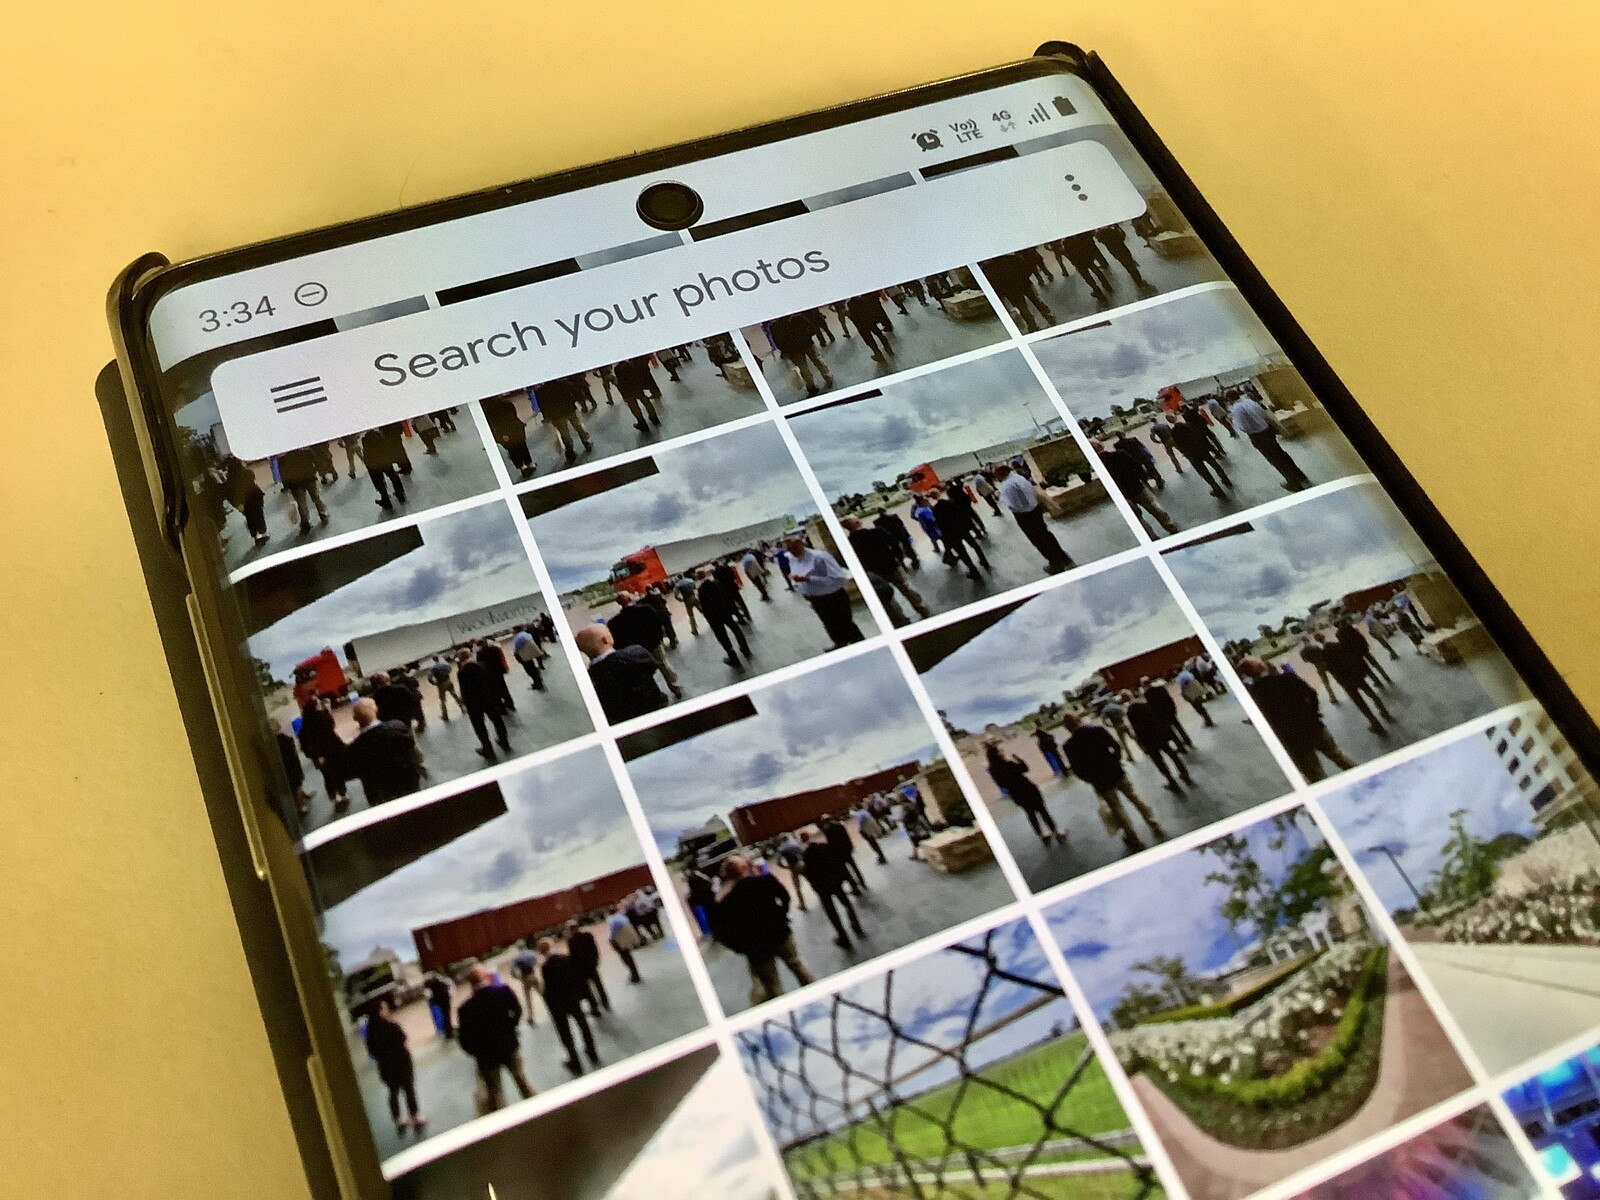 Google to fix Google Photos bug that gave iPhones unlimited original storage